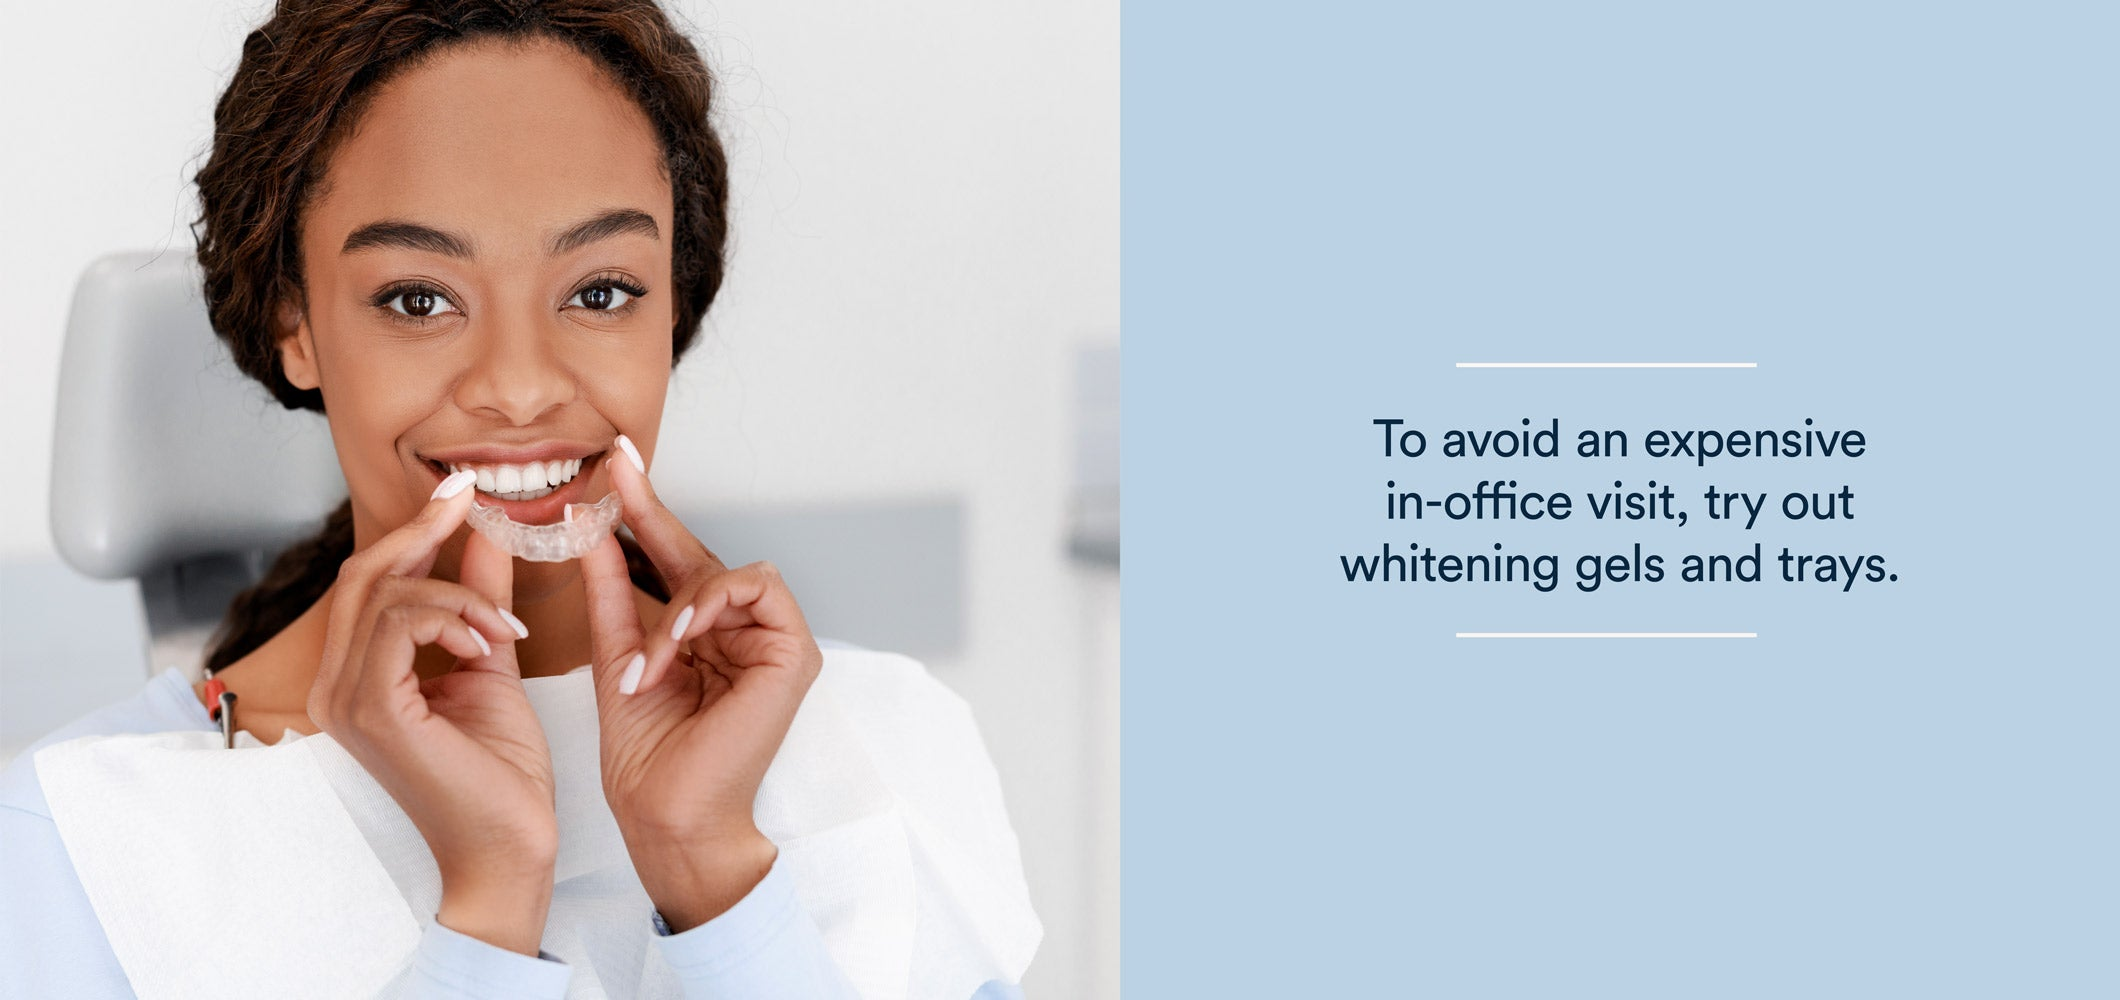 to avoid an expensive in-office visit, try out whitening gels and trays